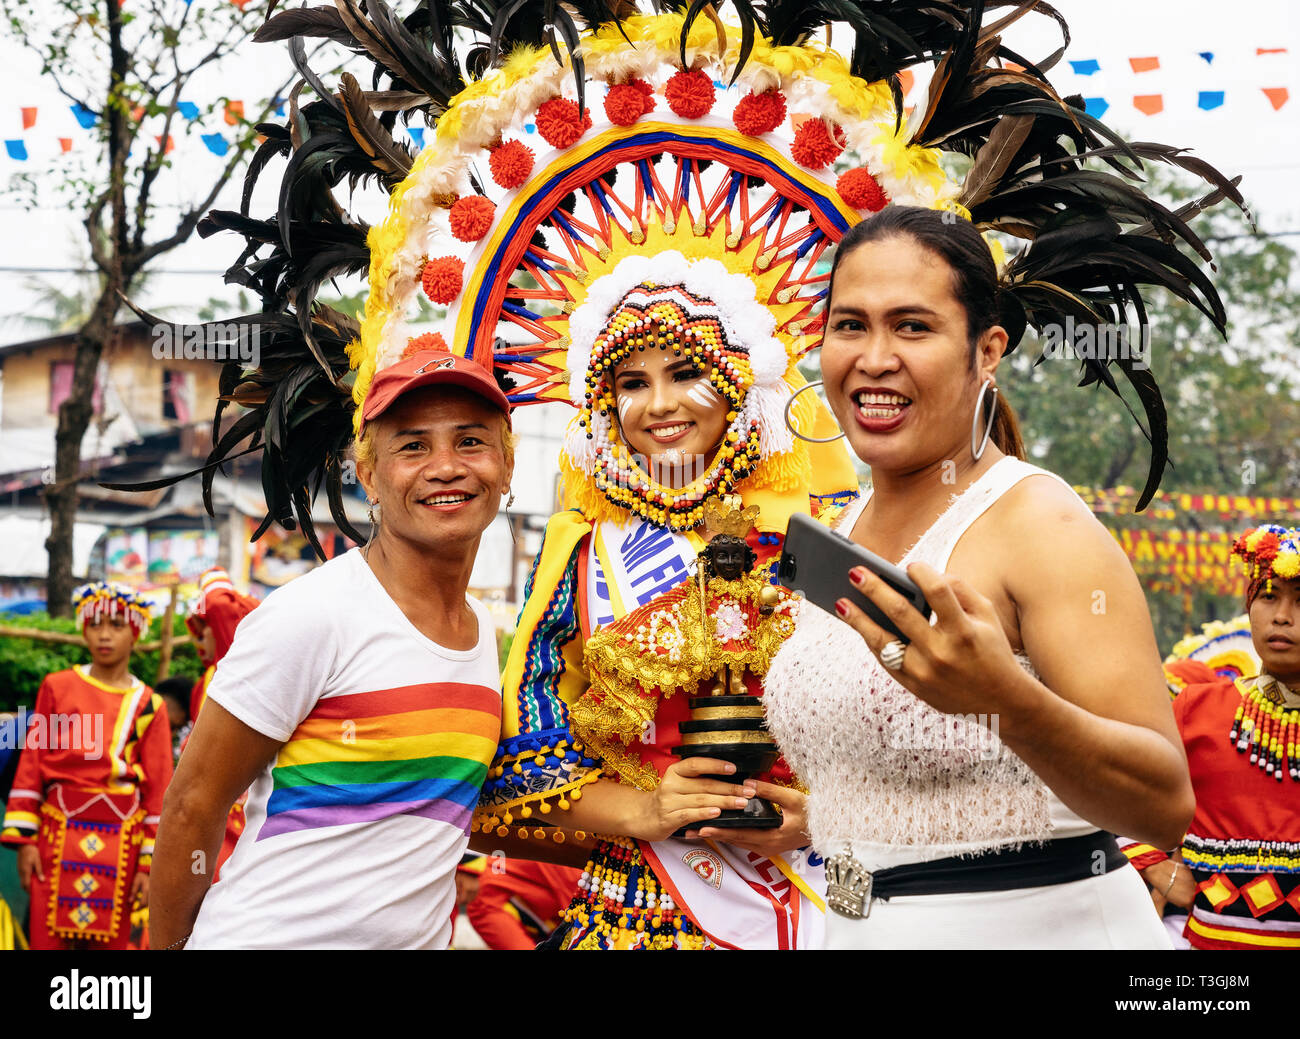 Cebu City , The Philippines - January 20, 2019: Viewers are photographed with a potential Queen of Sinulog. The Sinulog is an annual colorful religiou - Stock Image